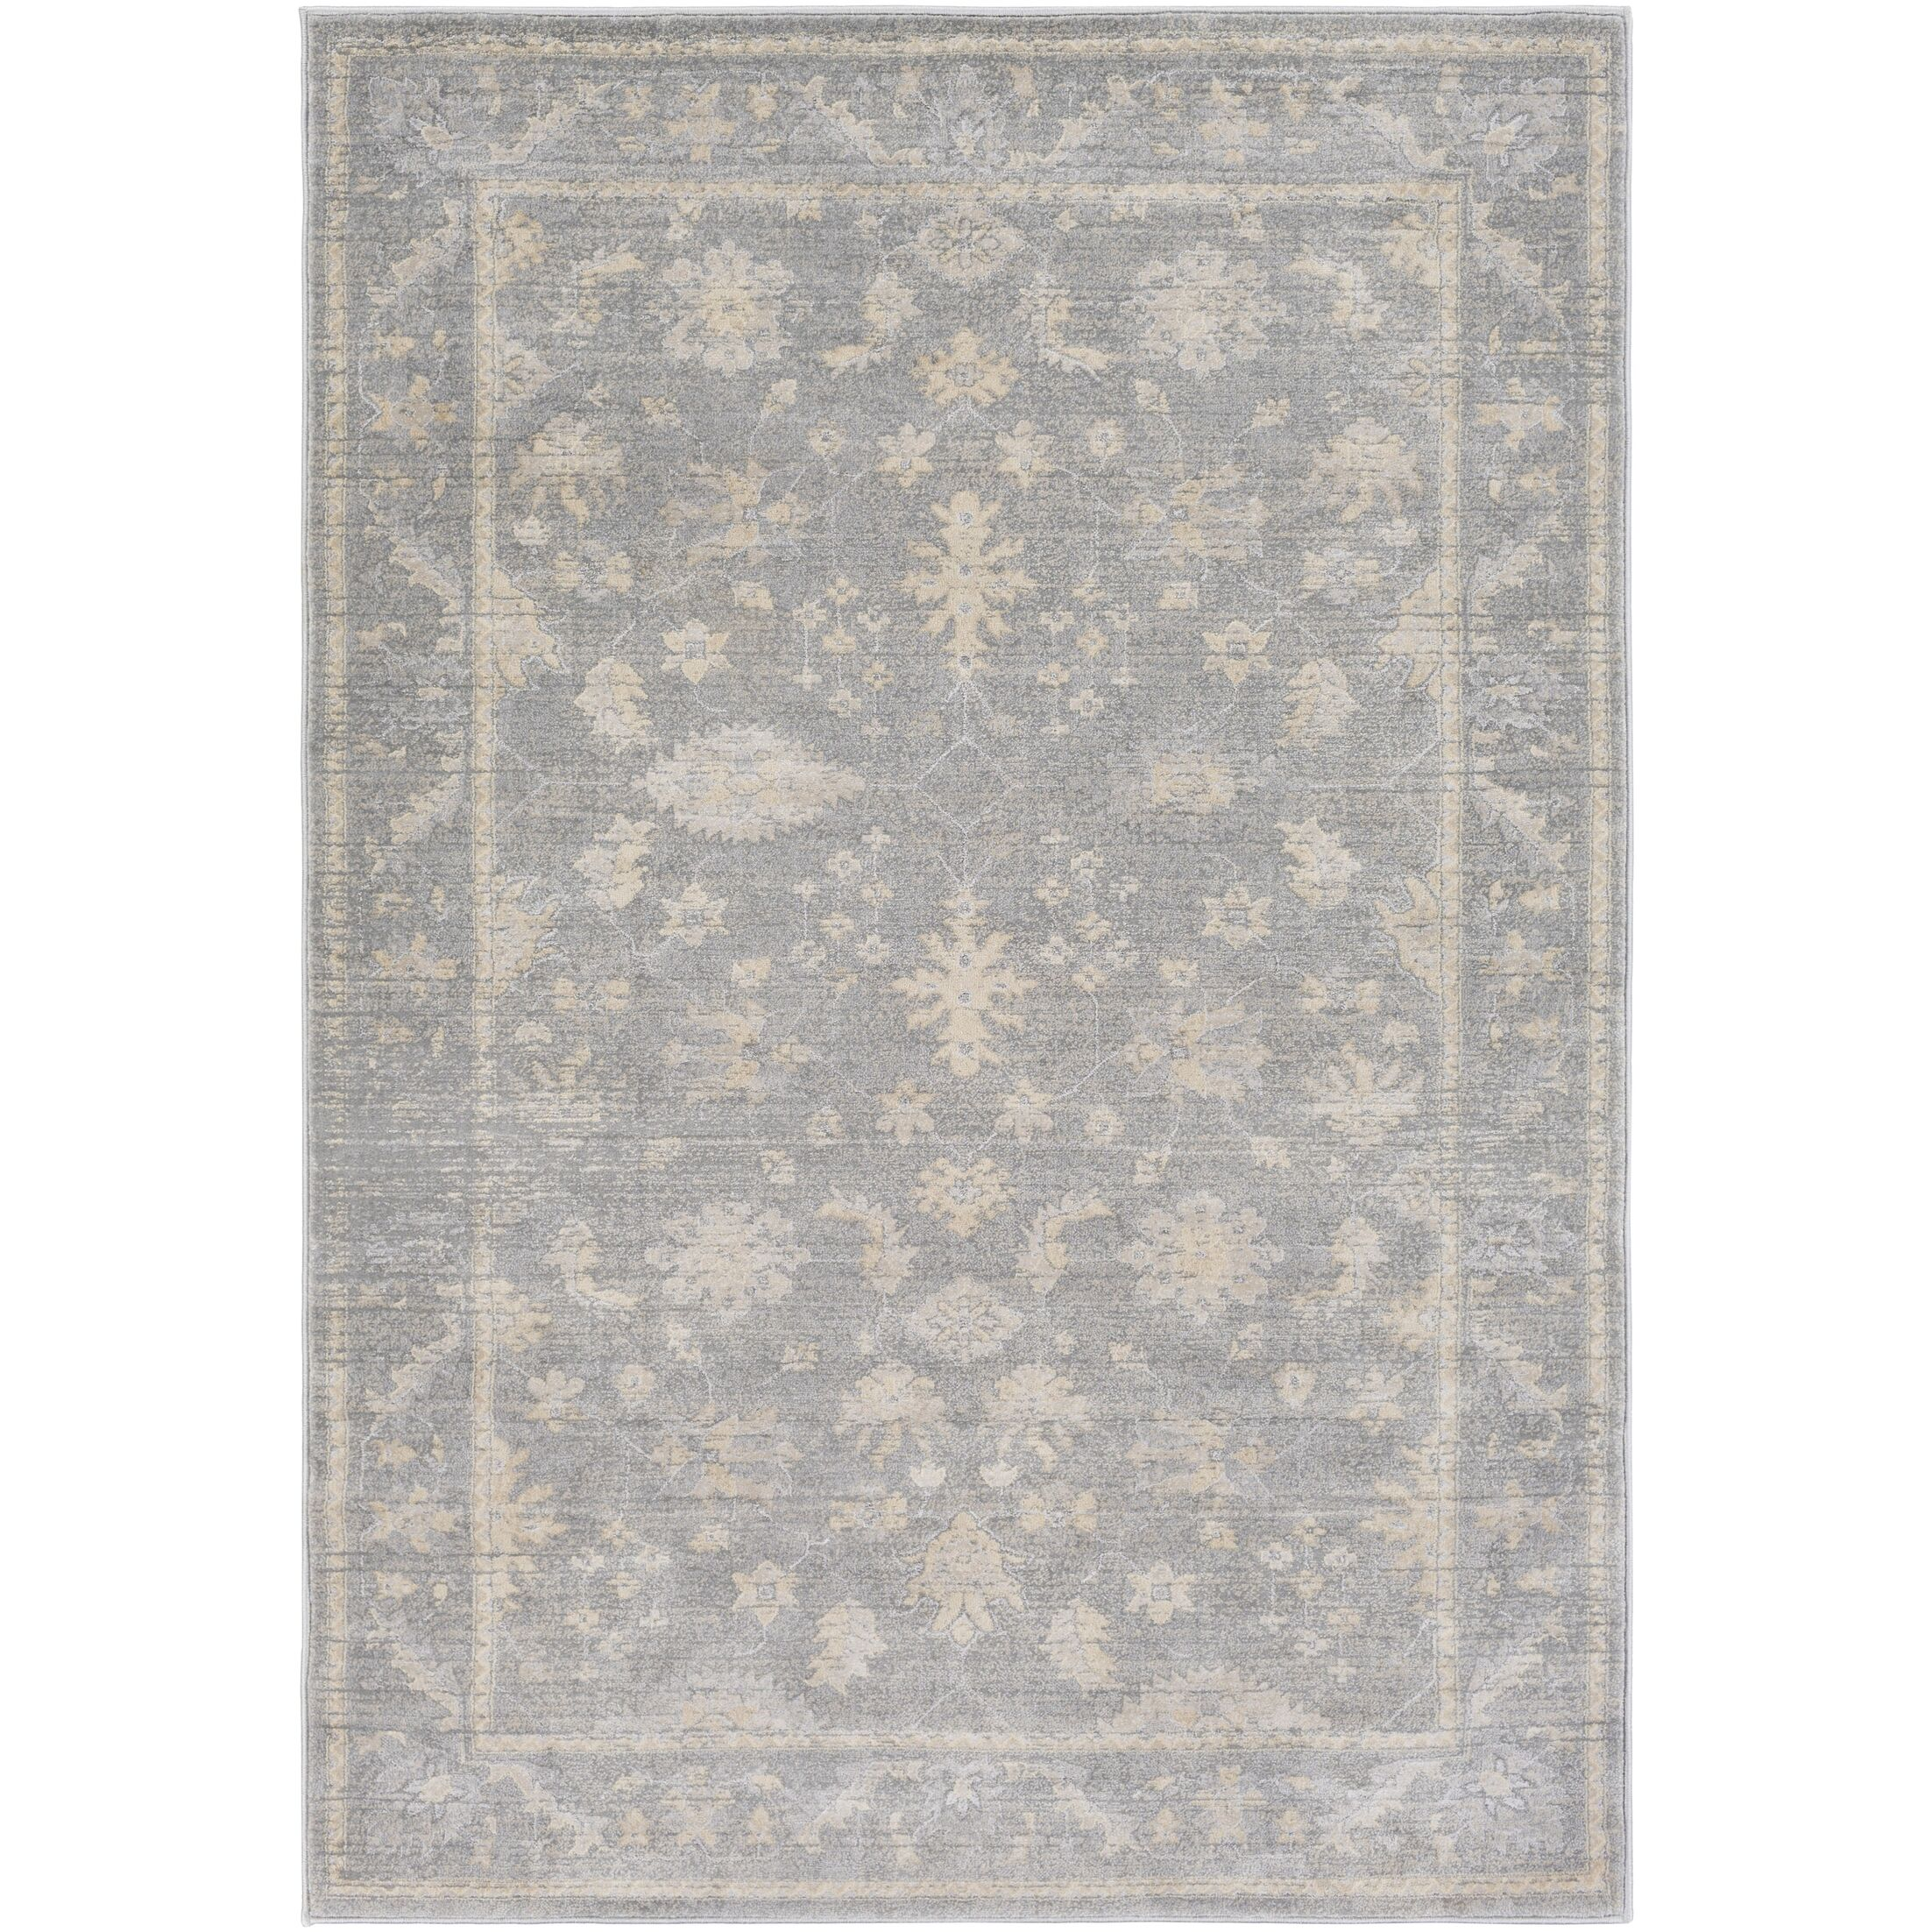 Capri Medium Gray/Taupe Area Rug Rug Size: Rectangle 5' x 7'6